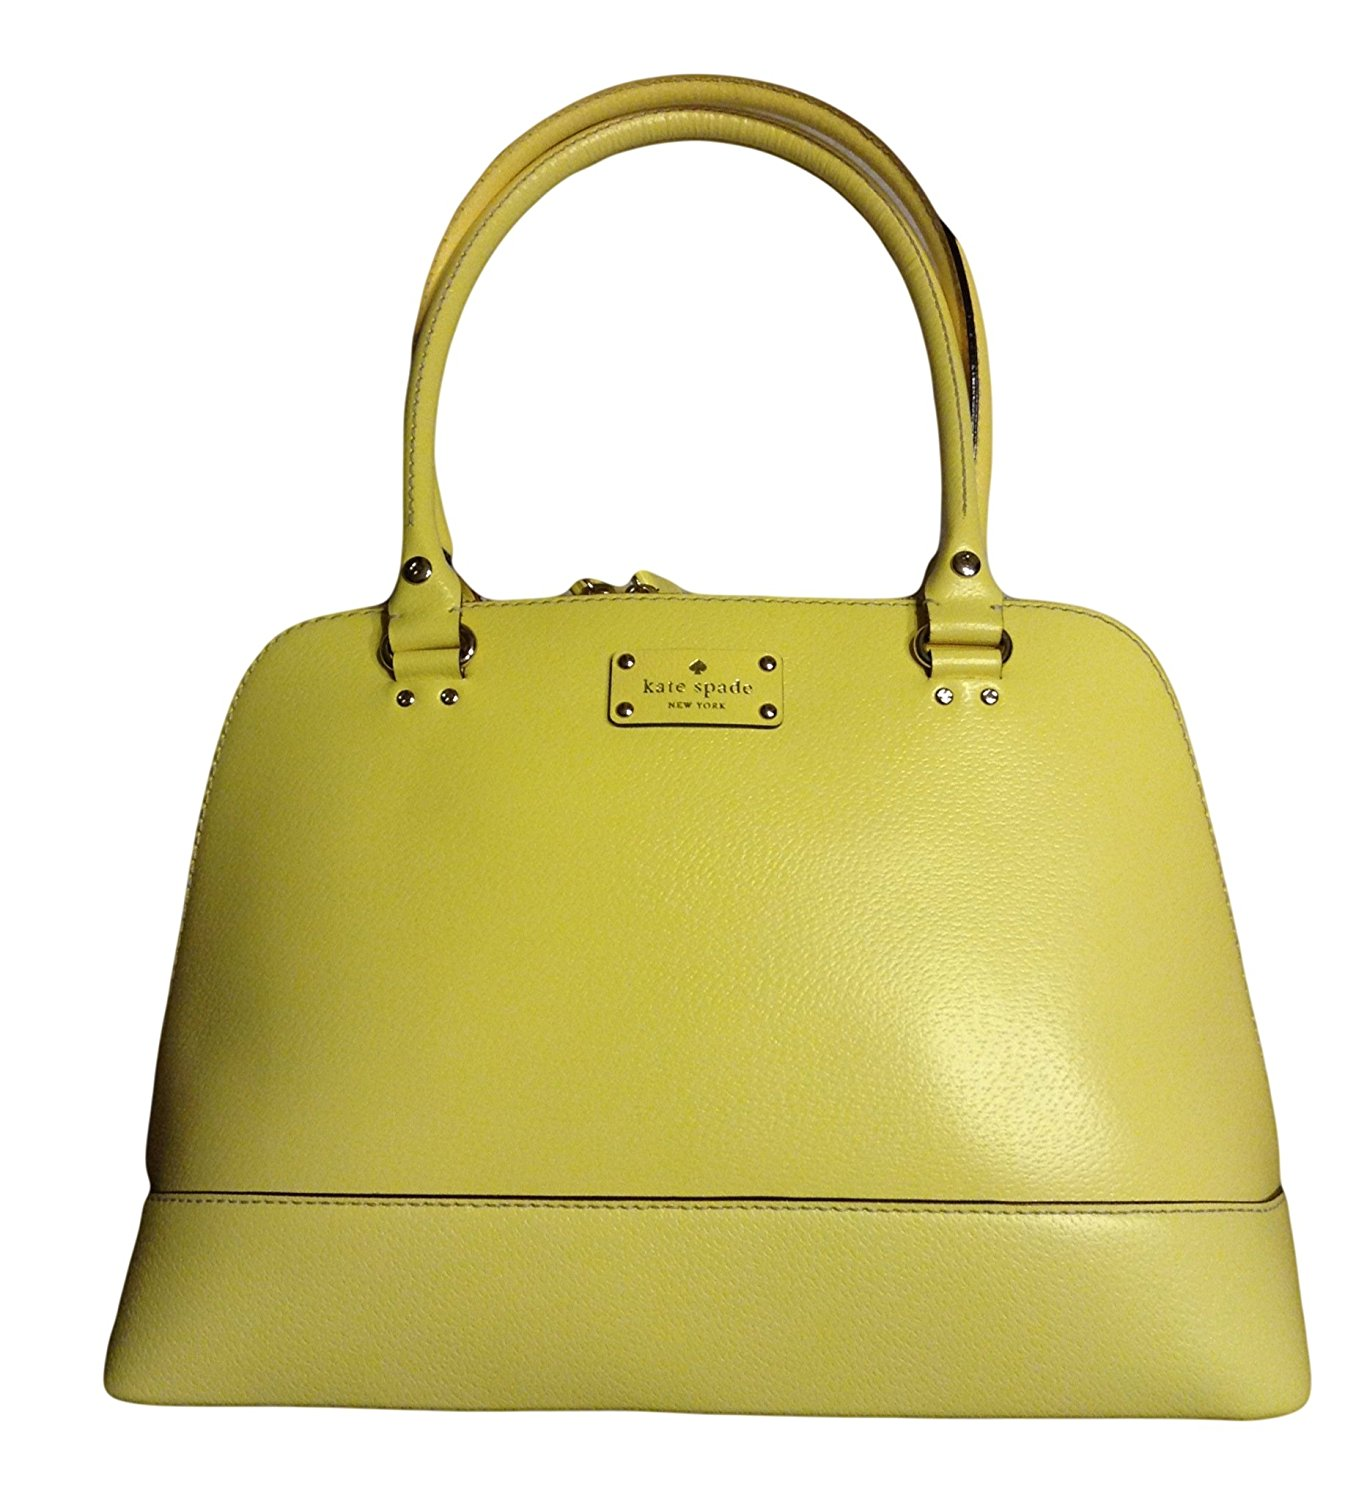 Kate Spade Wellesley Rachelle Handbag Limonium Yellow Lea...